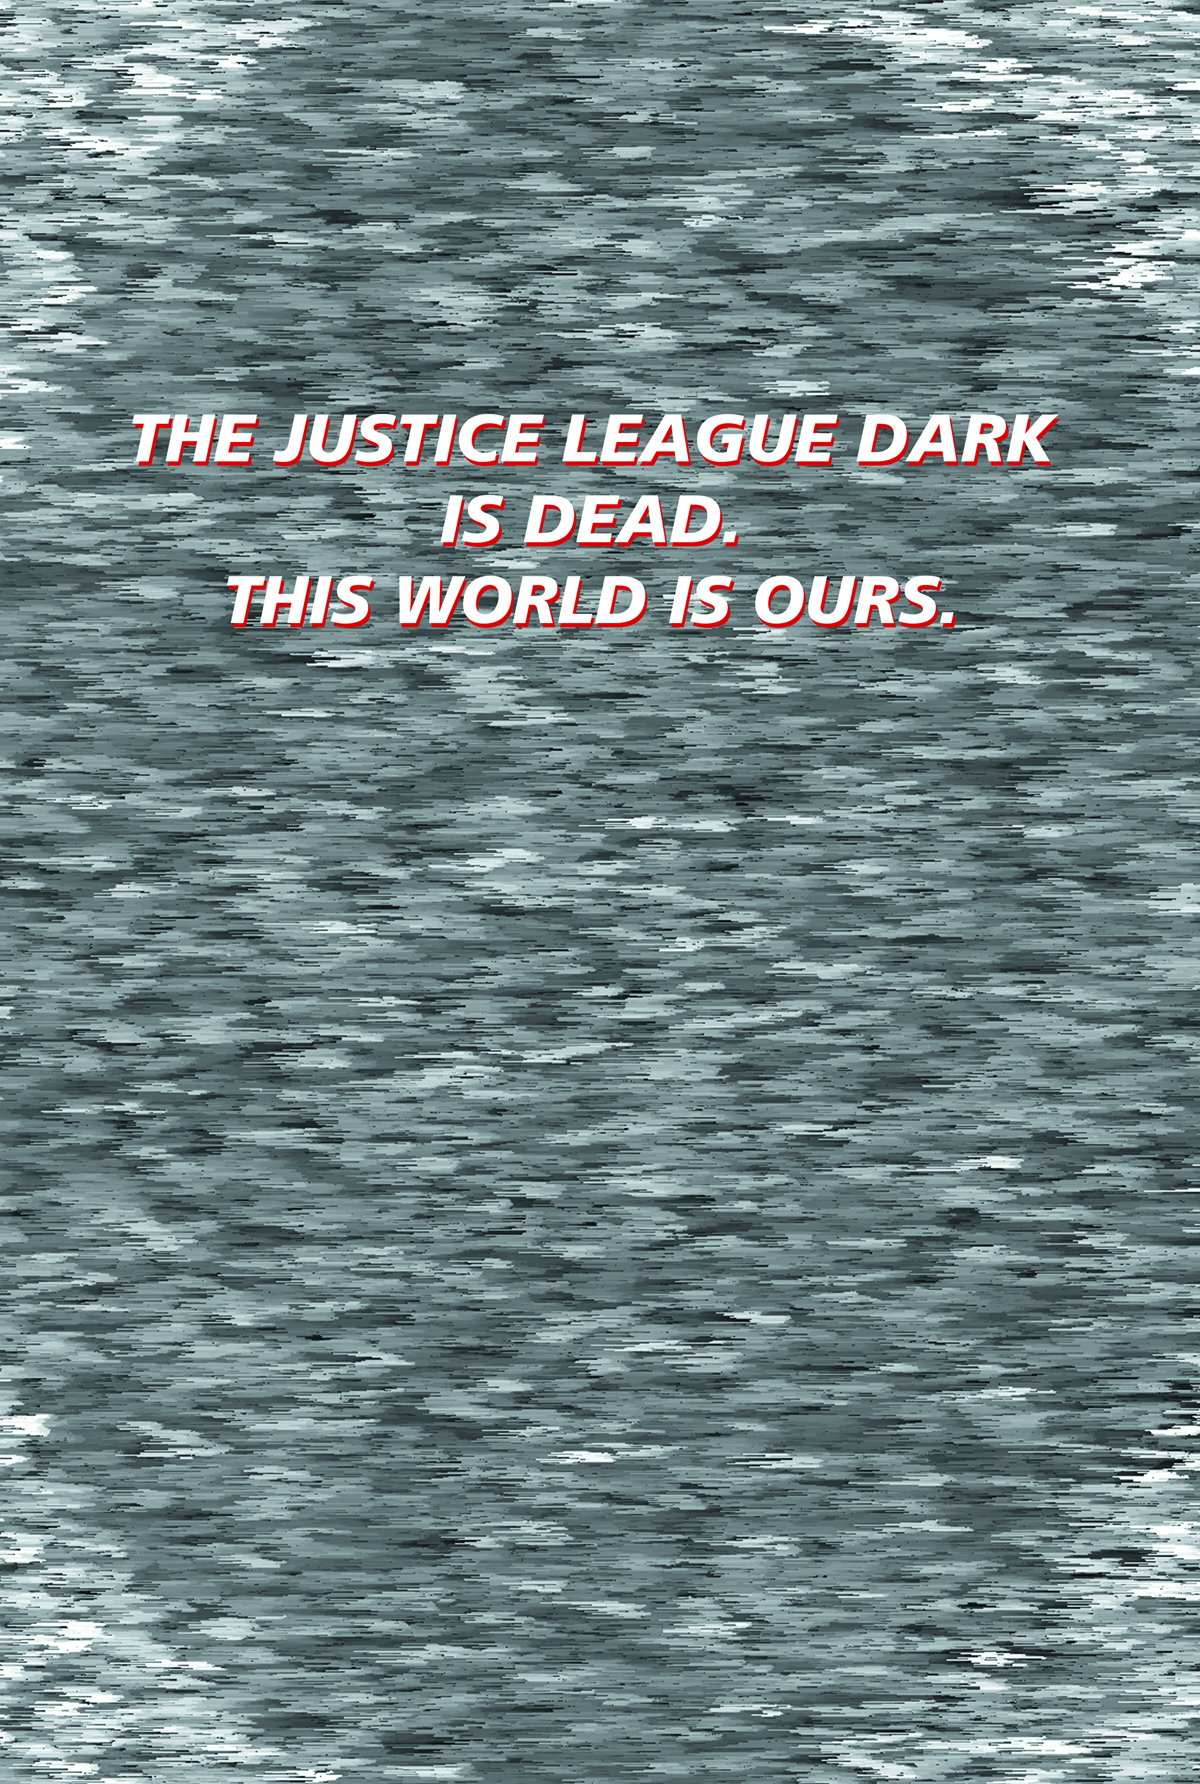 JUSTICE LEAGUE DARK #24 (EVIL)